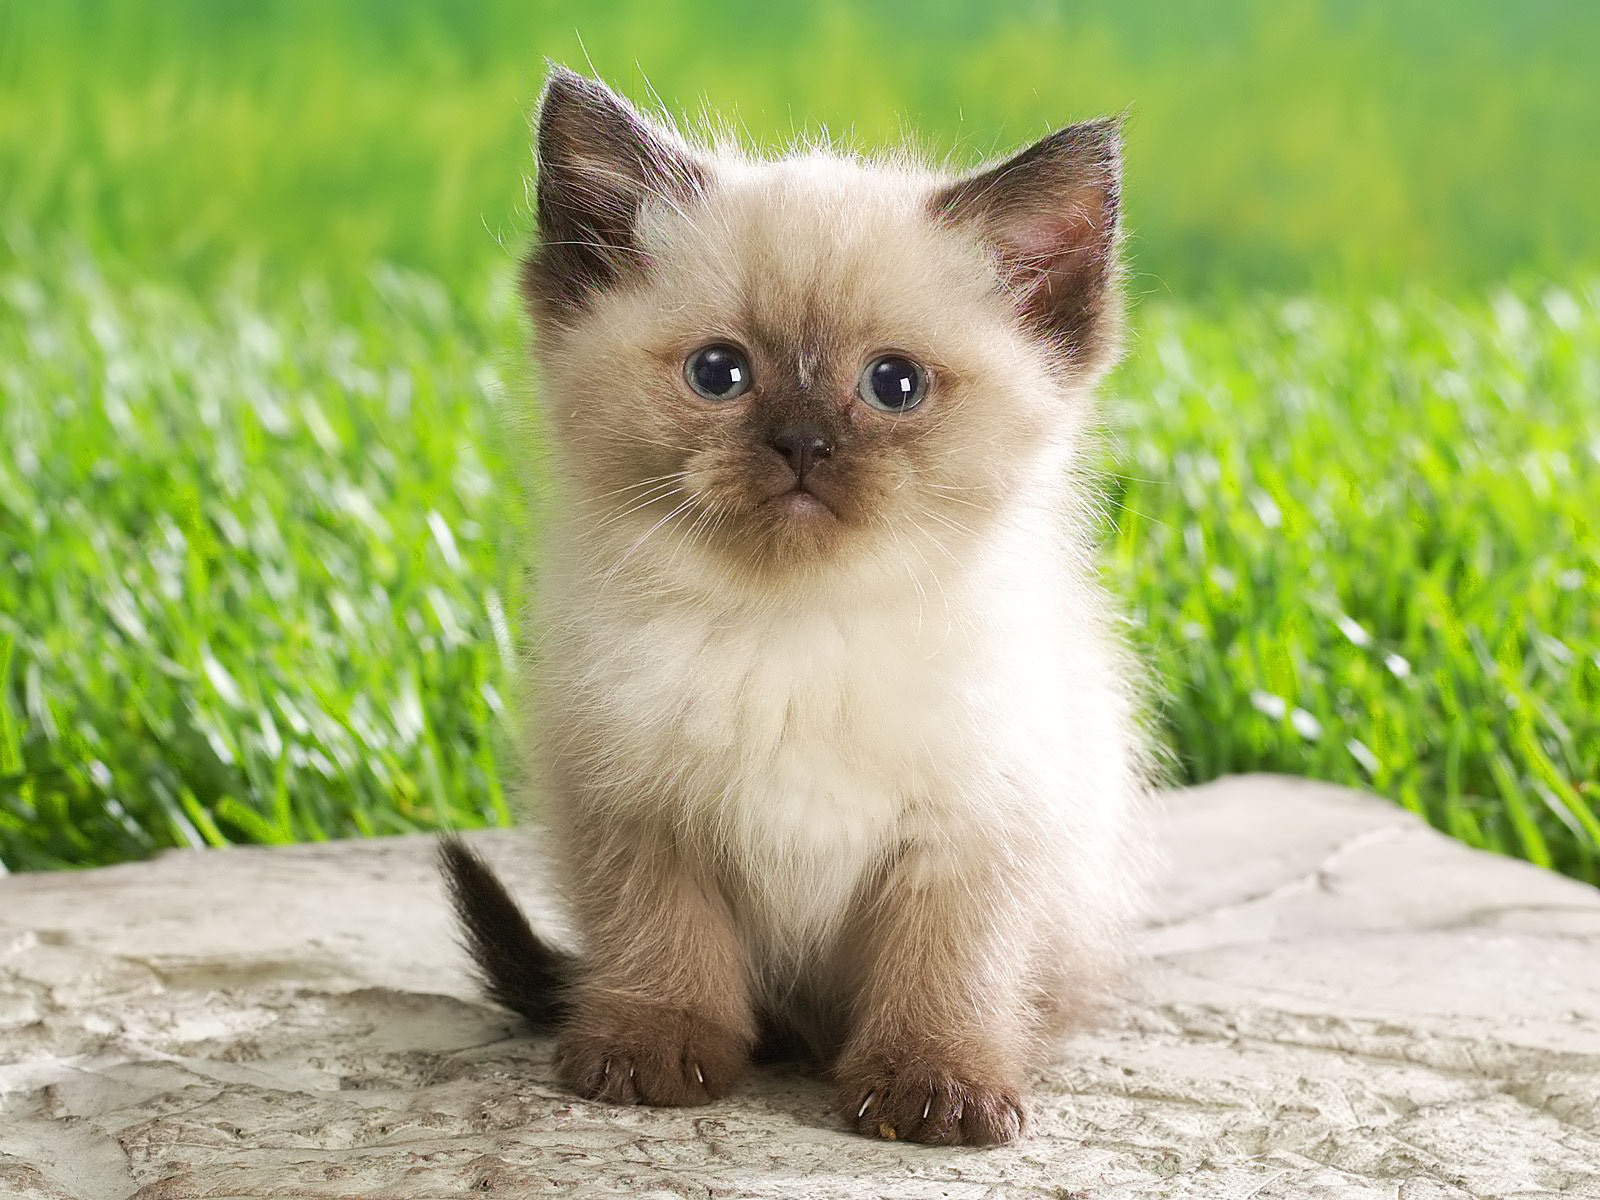 Cute Kitten - babies-pets-and-animals Wallpaper